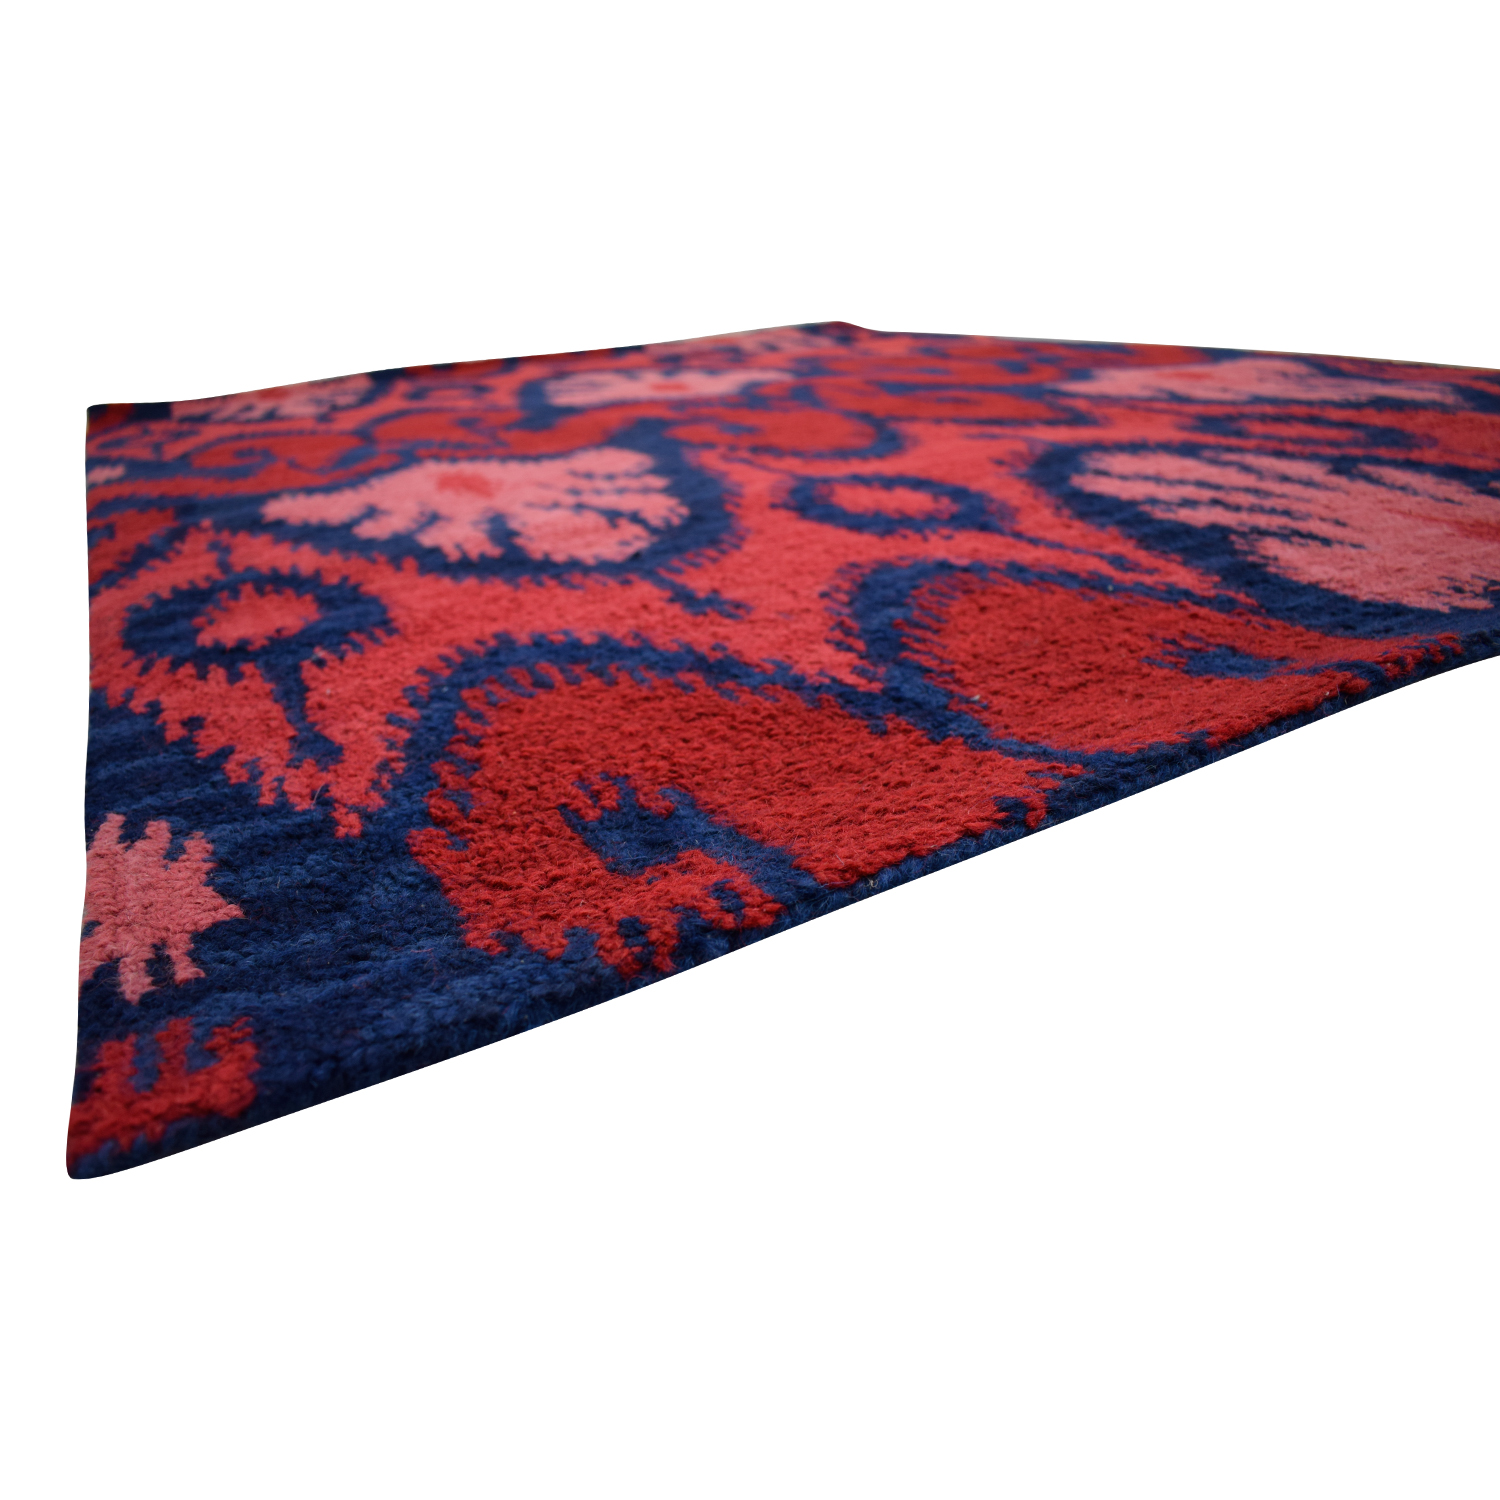 72 off ikat wool red and navy rug decor for Red and navy rug